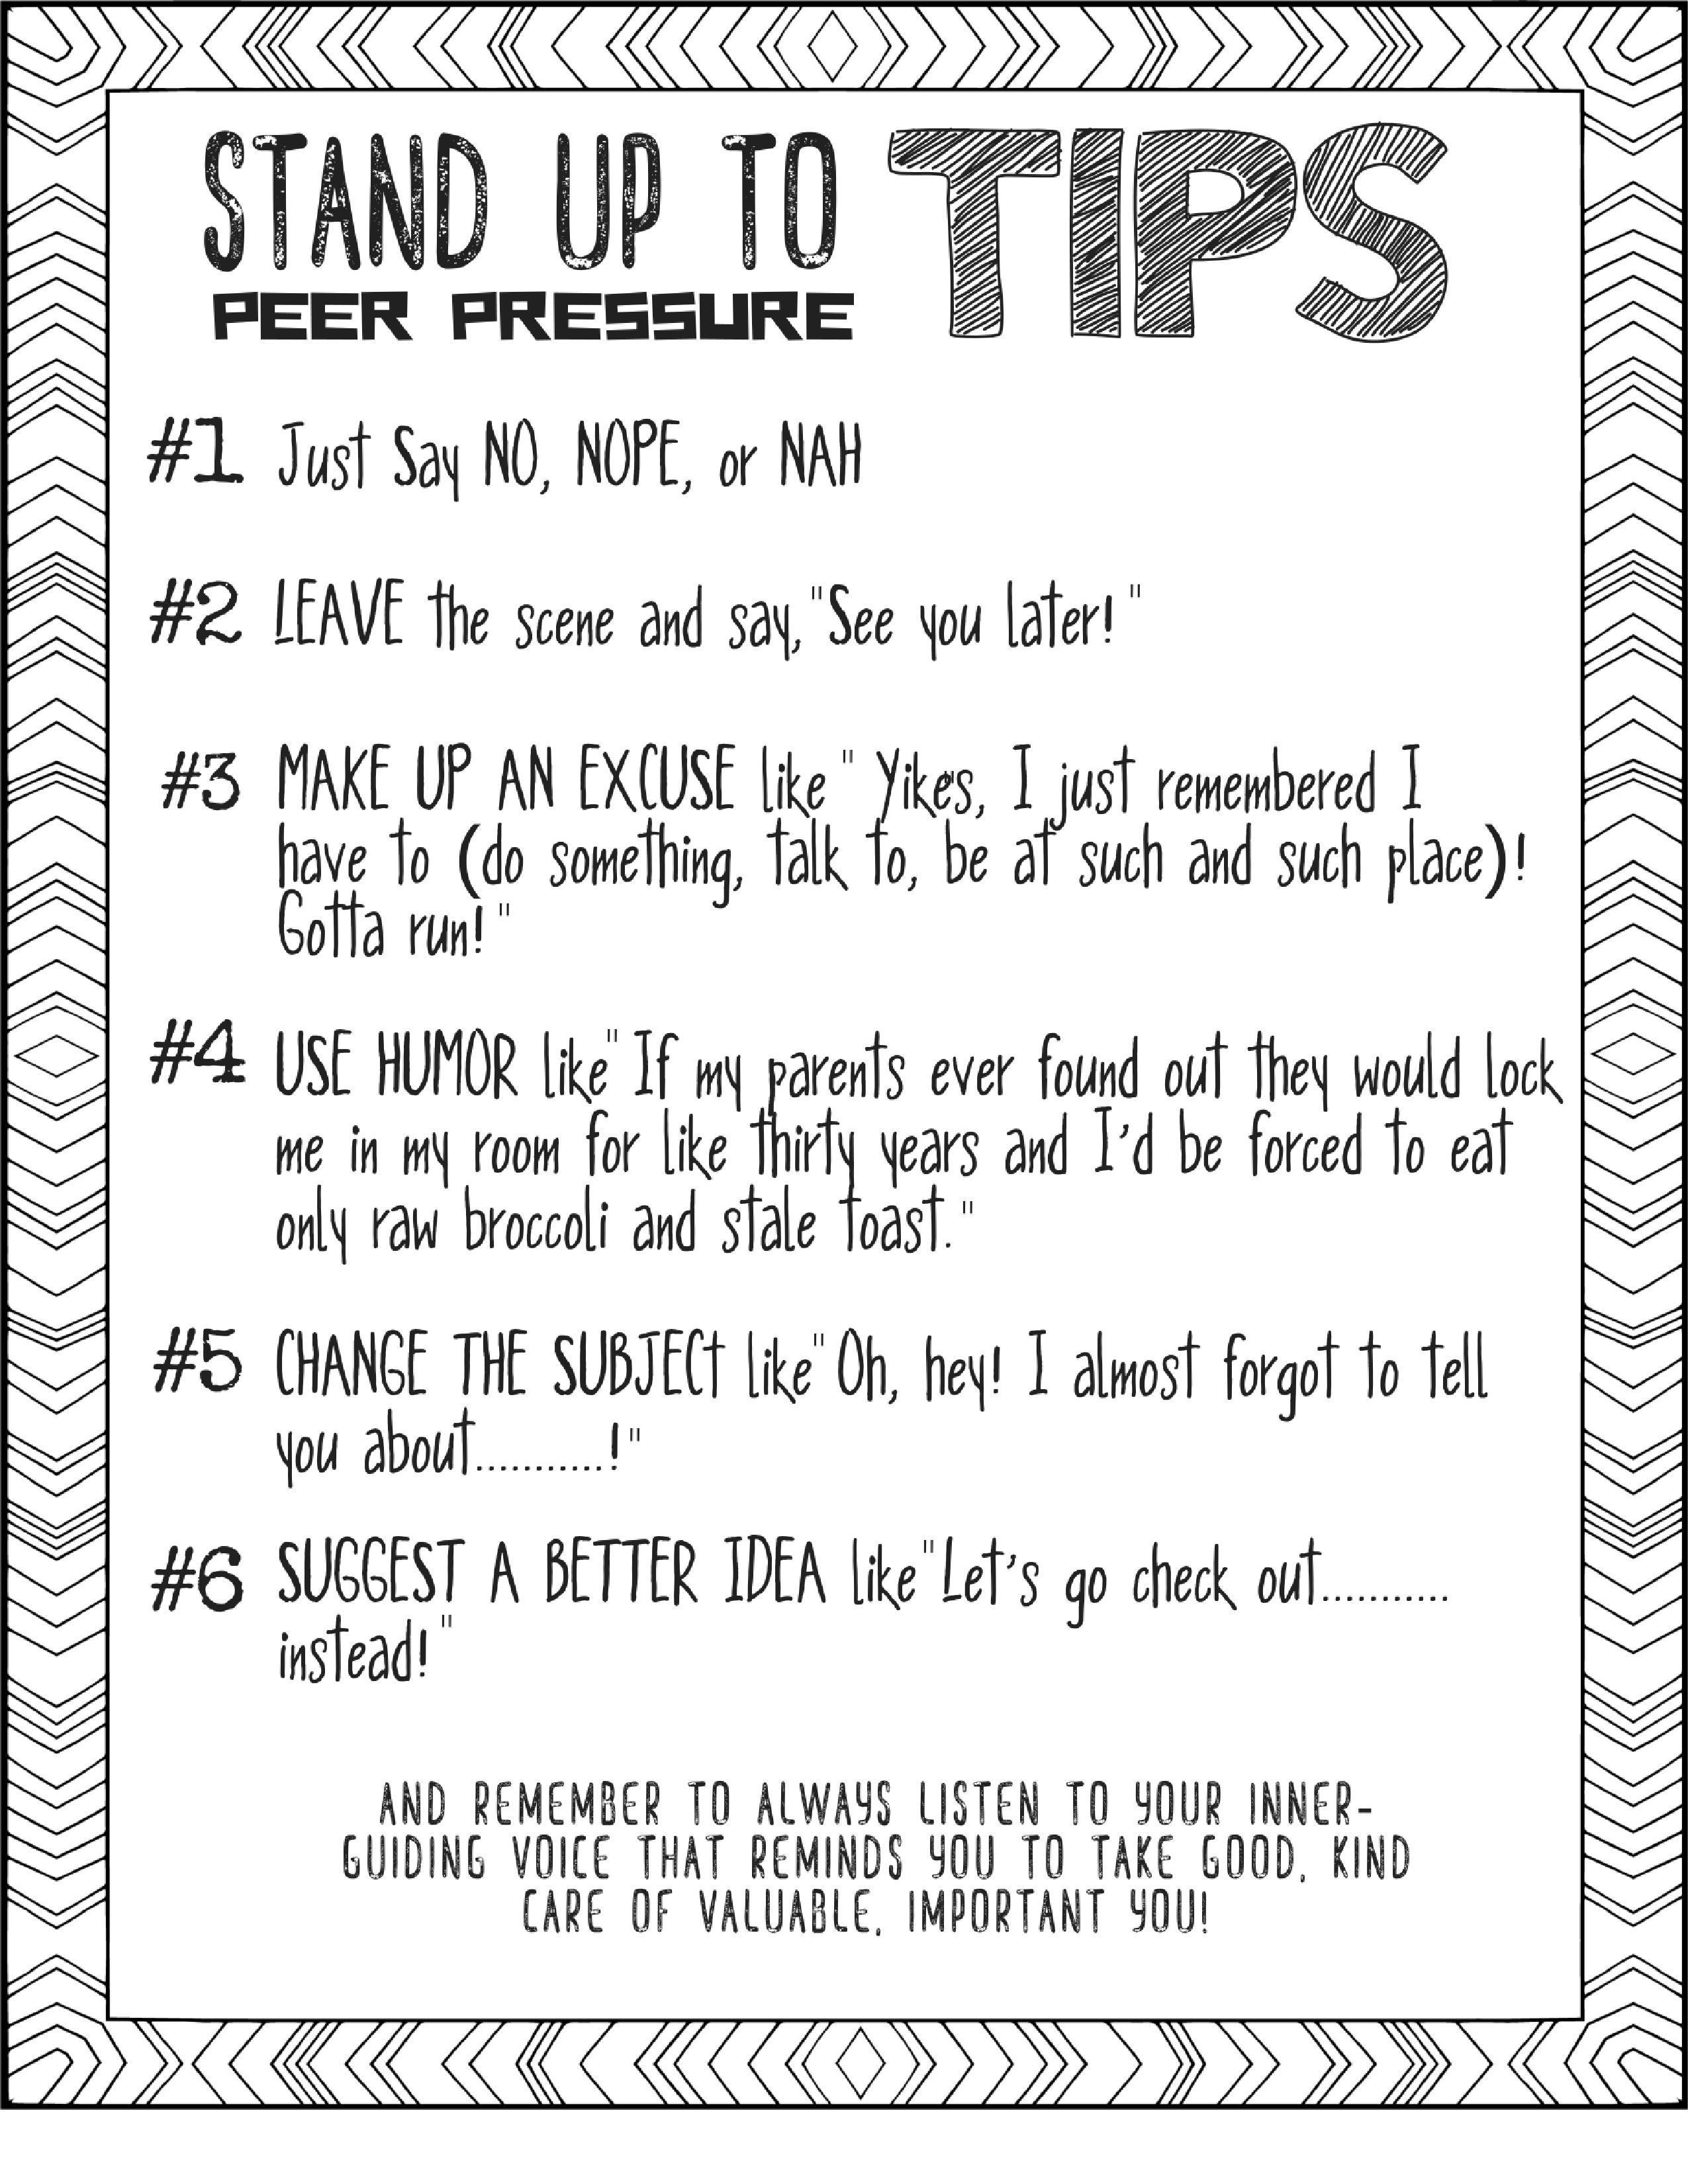 Tips To Stand Up To Peer Pressure Fun Refusal Skills And Boundaries Lesson And Game For 4 7th Gr Peer Pressure Peer Pressure Activities Peer Pressure Lessons